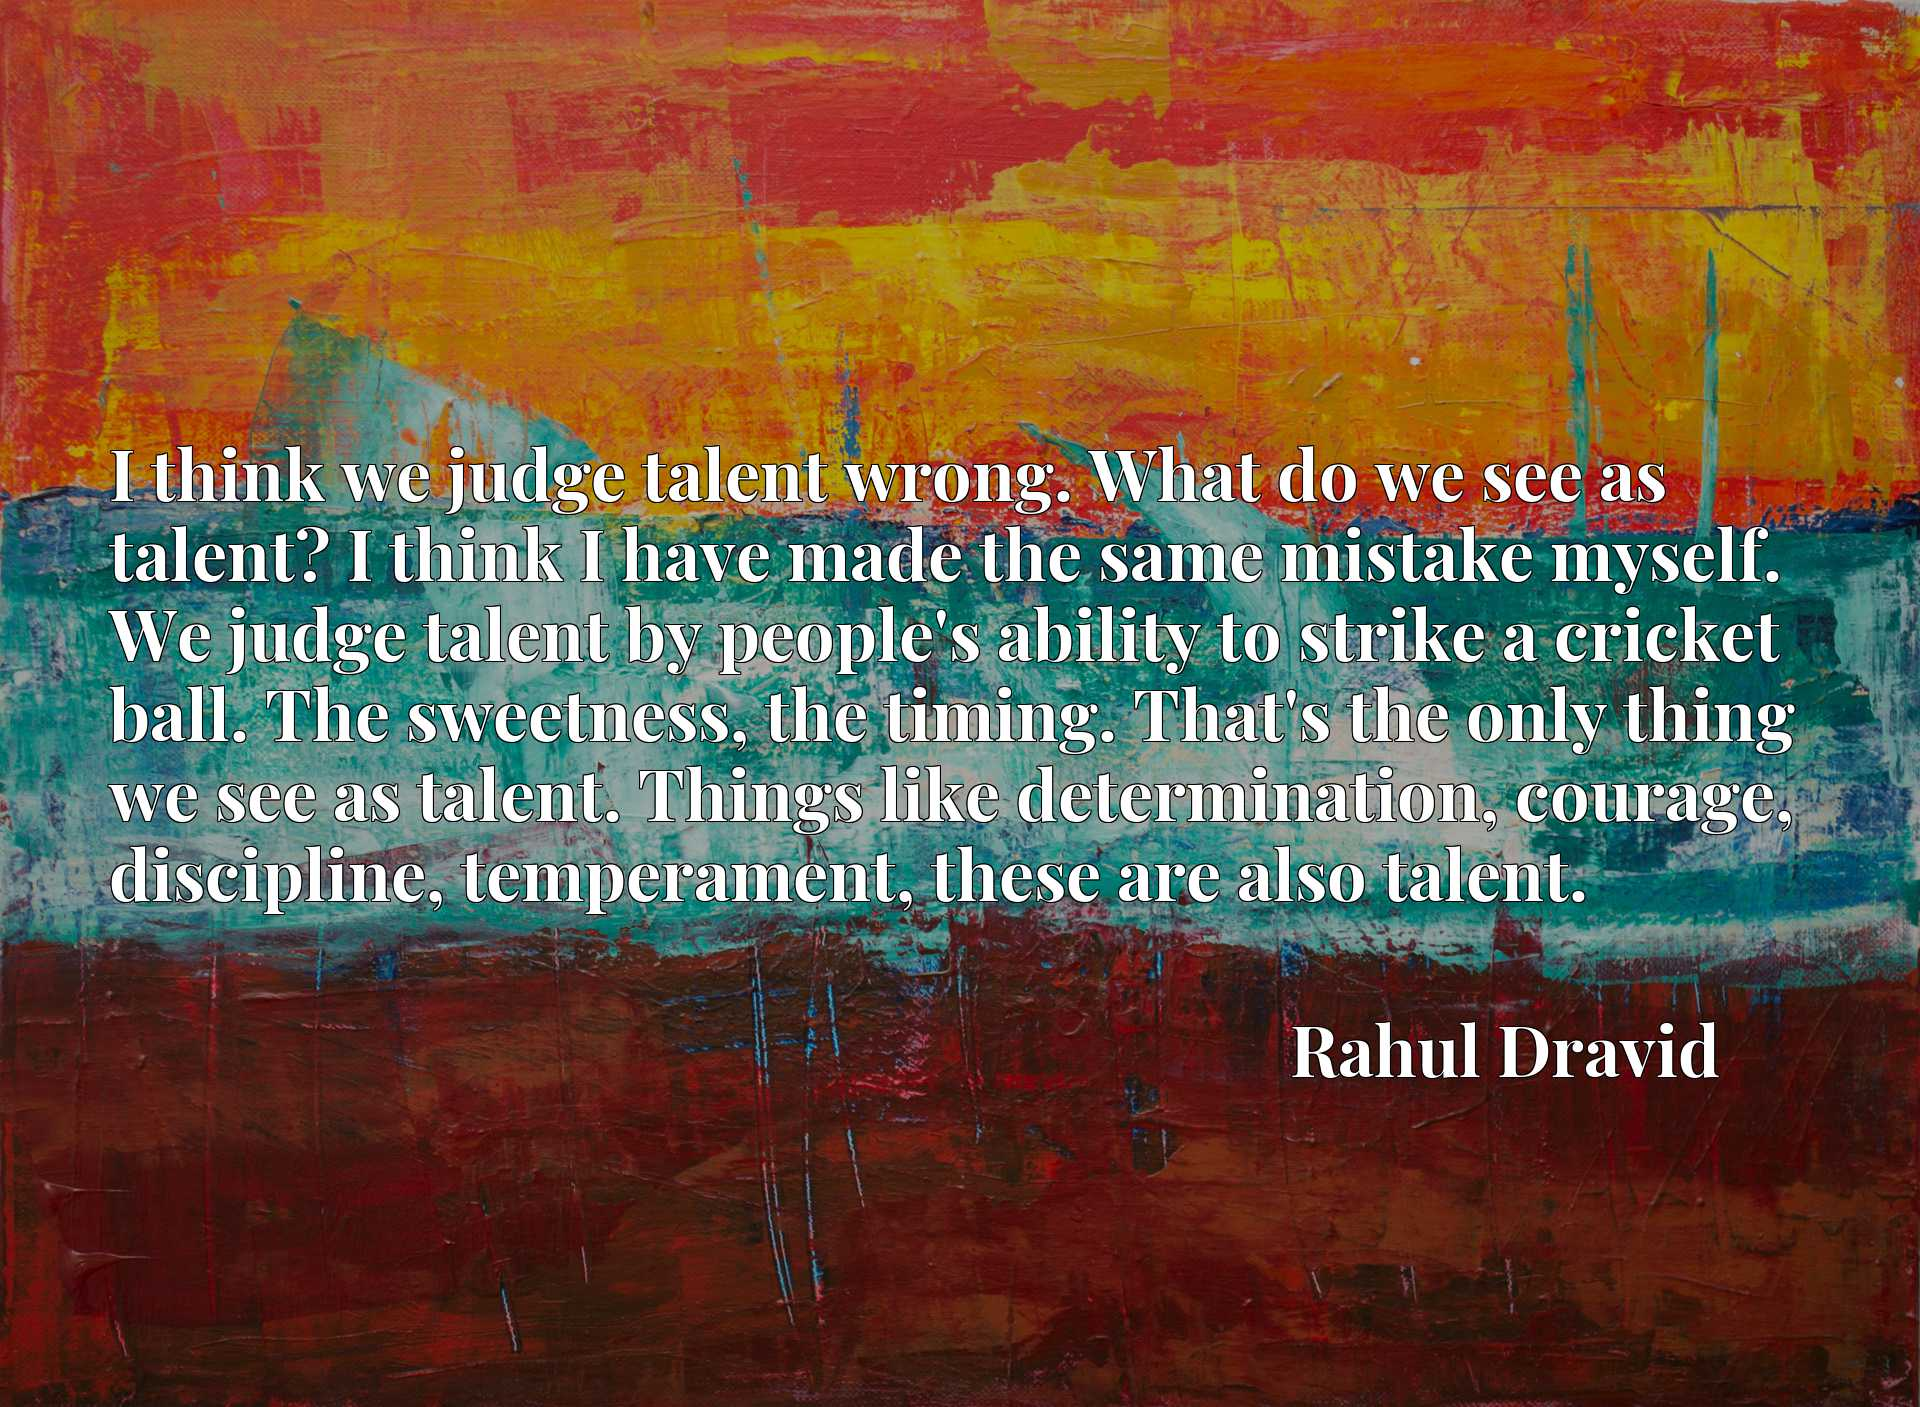 I think we judge talent wrong. What do we see as talent? I think I have made the same mistake myself. We judge talent by people's ability to strike a cricket ball. The sweetness, the timing. That's the only thing we see as talent. Things like determination, courage, discipline, temperament, these are also talent.